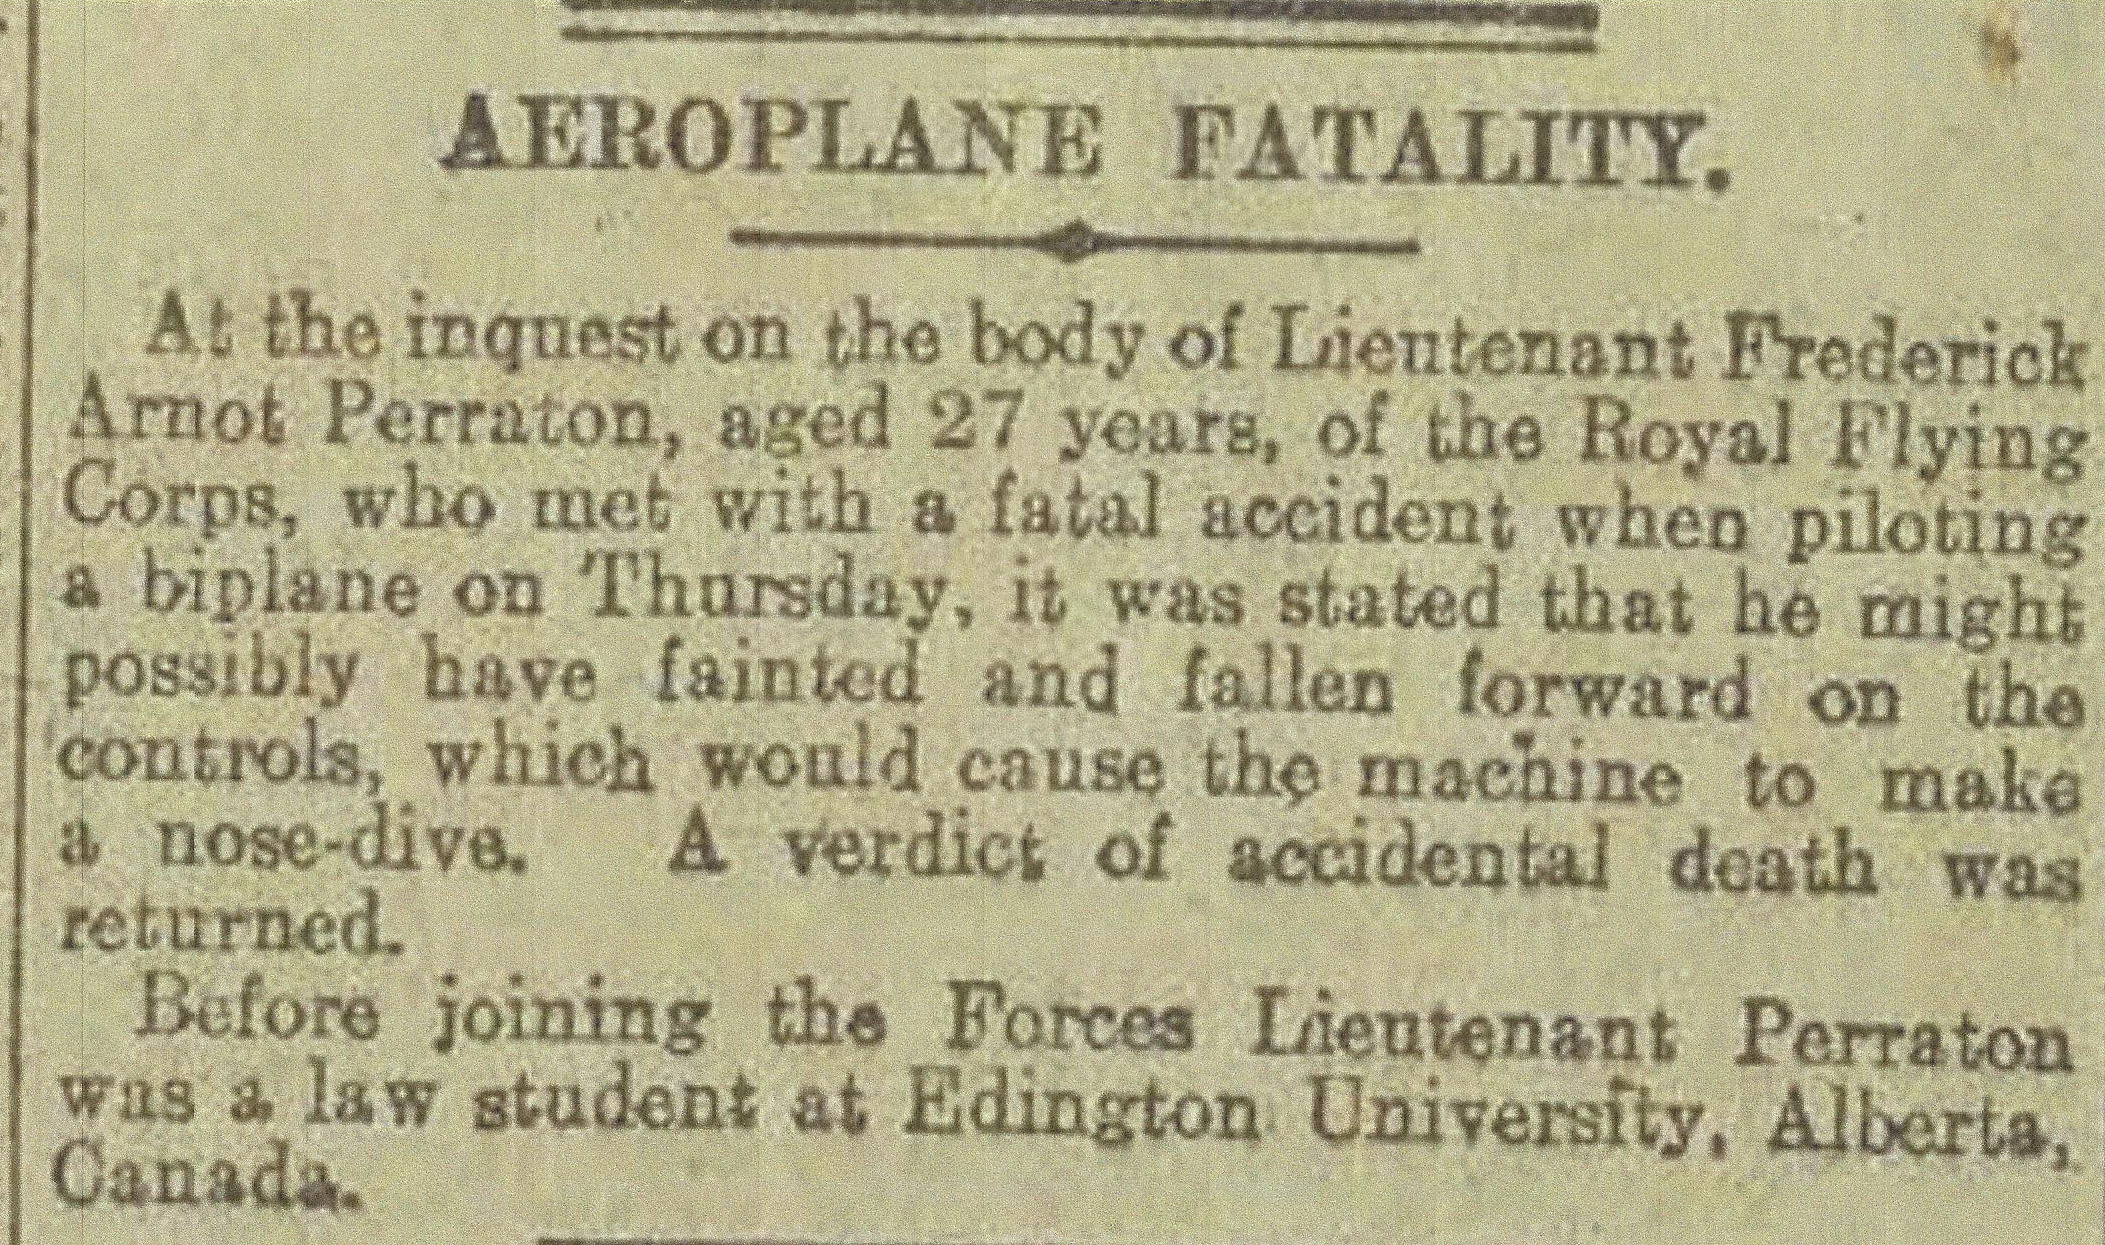 Newspaper Clipping– Newspaper clipping from Daily Telegraph of March 5, 1917. Image taken from web address of http://www.telegraph.co.uk/news/ww1-archive/12214358/Daily-Telegraph-March-5-1917.html